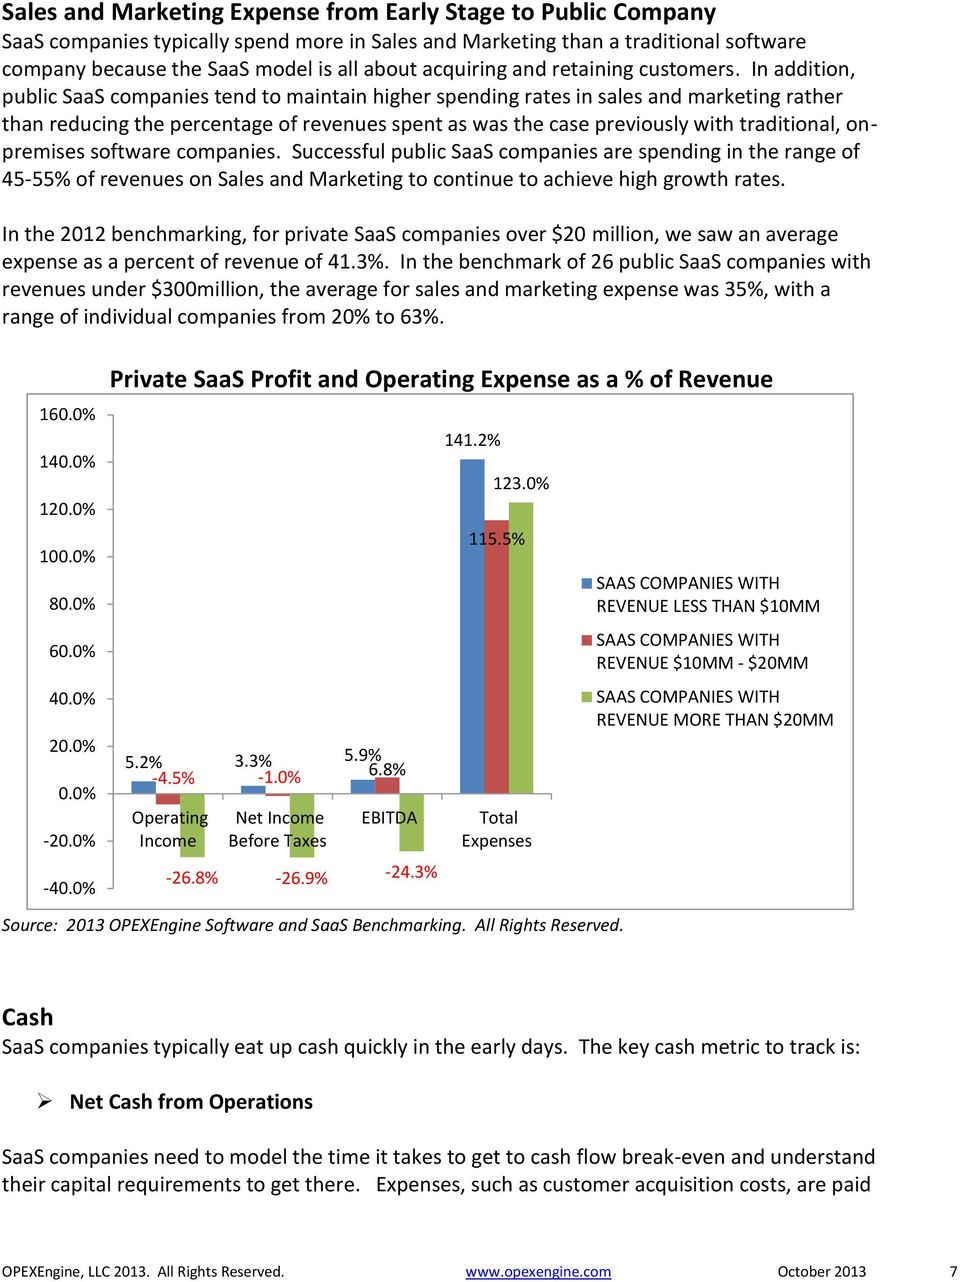 In addition, public SaaS companies tend to maintain higher spending rates in sales and marketing rather than reducing the percentage of revenues spent as was the case previously with traditional,